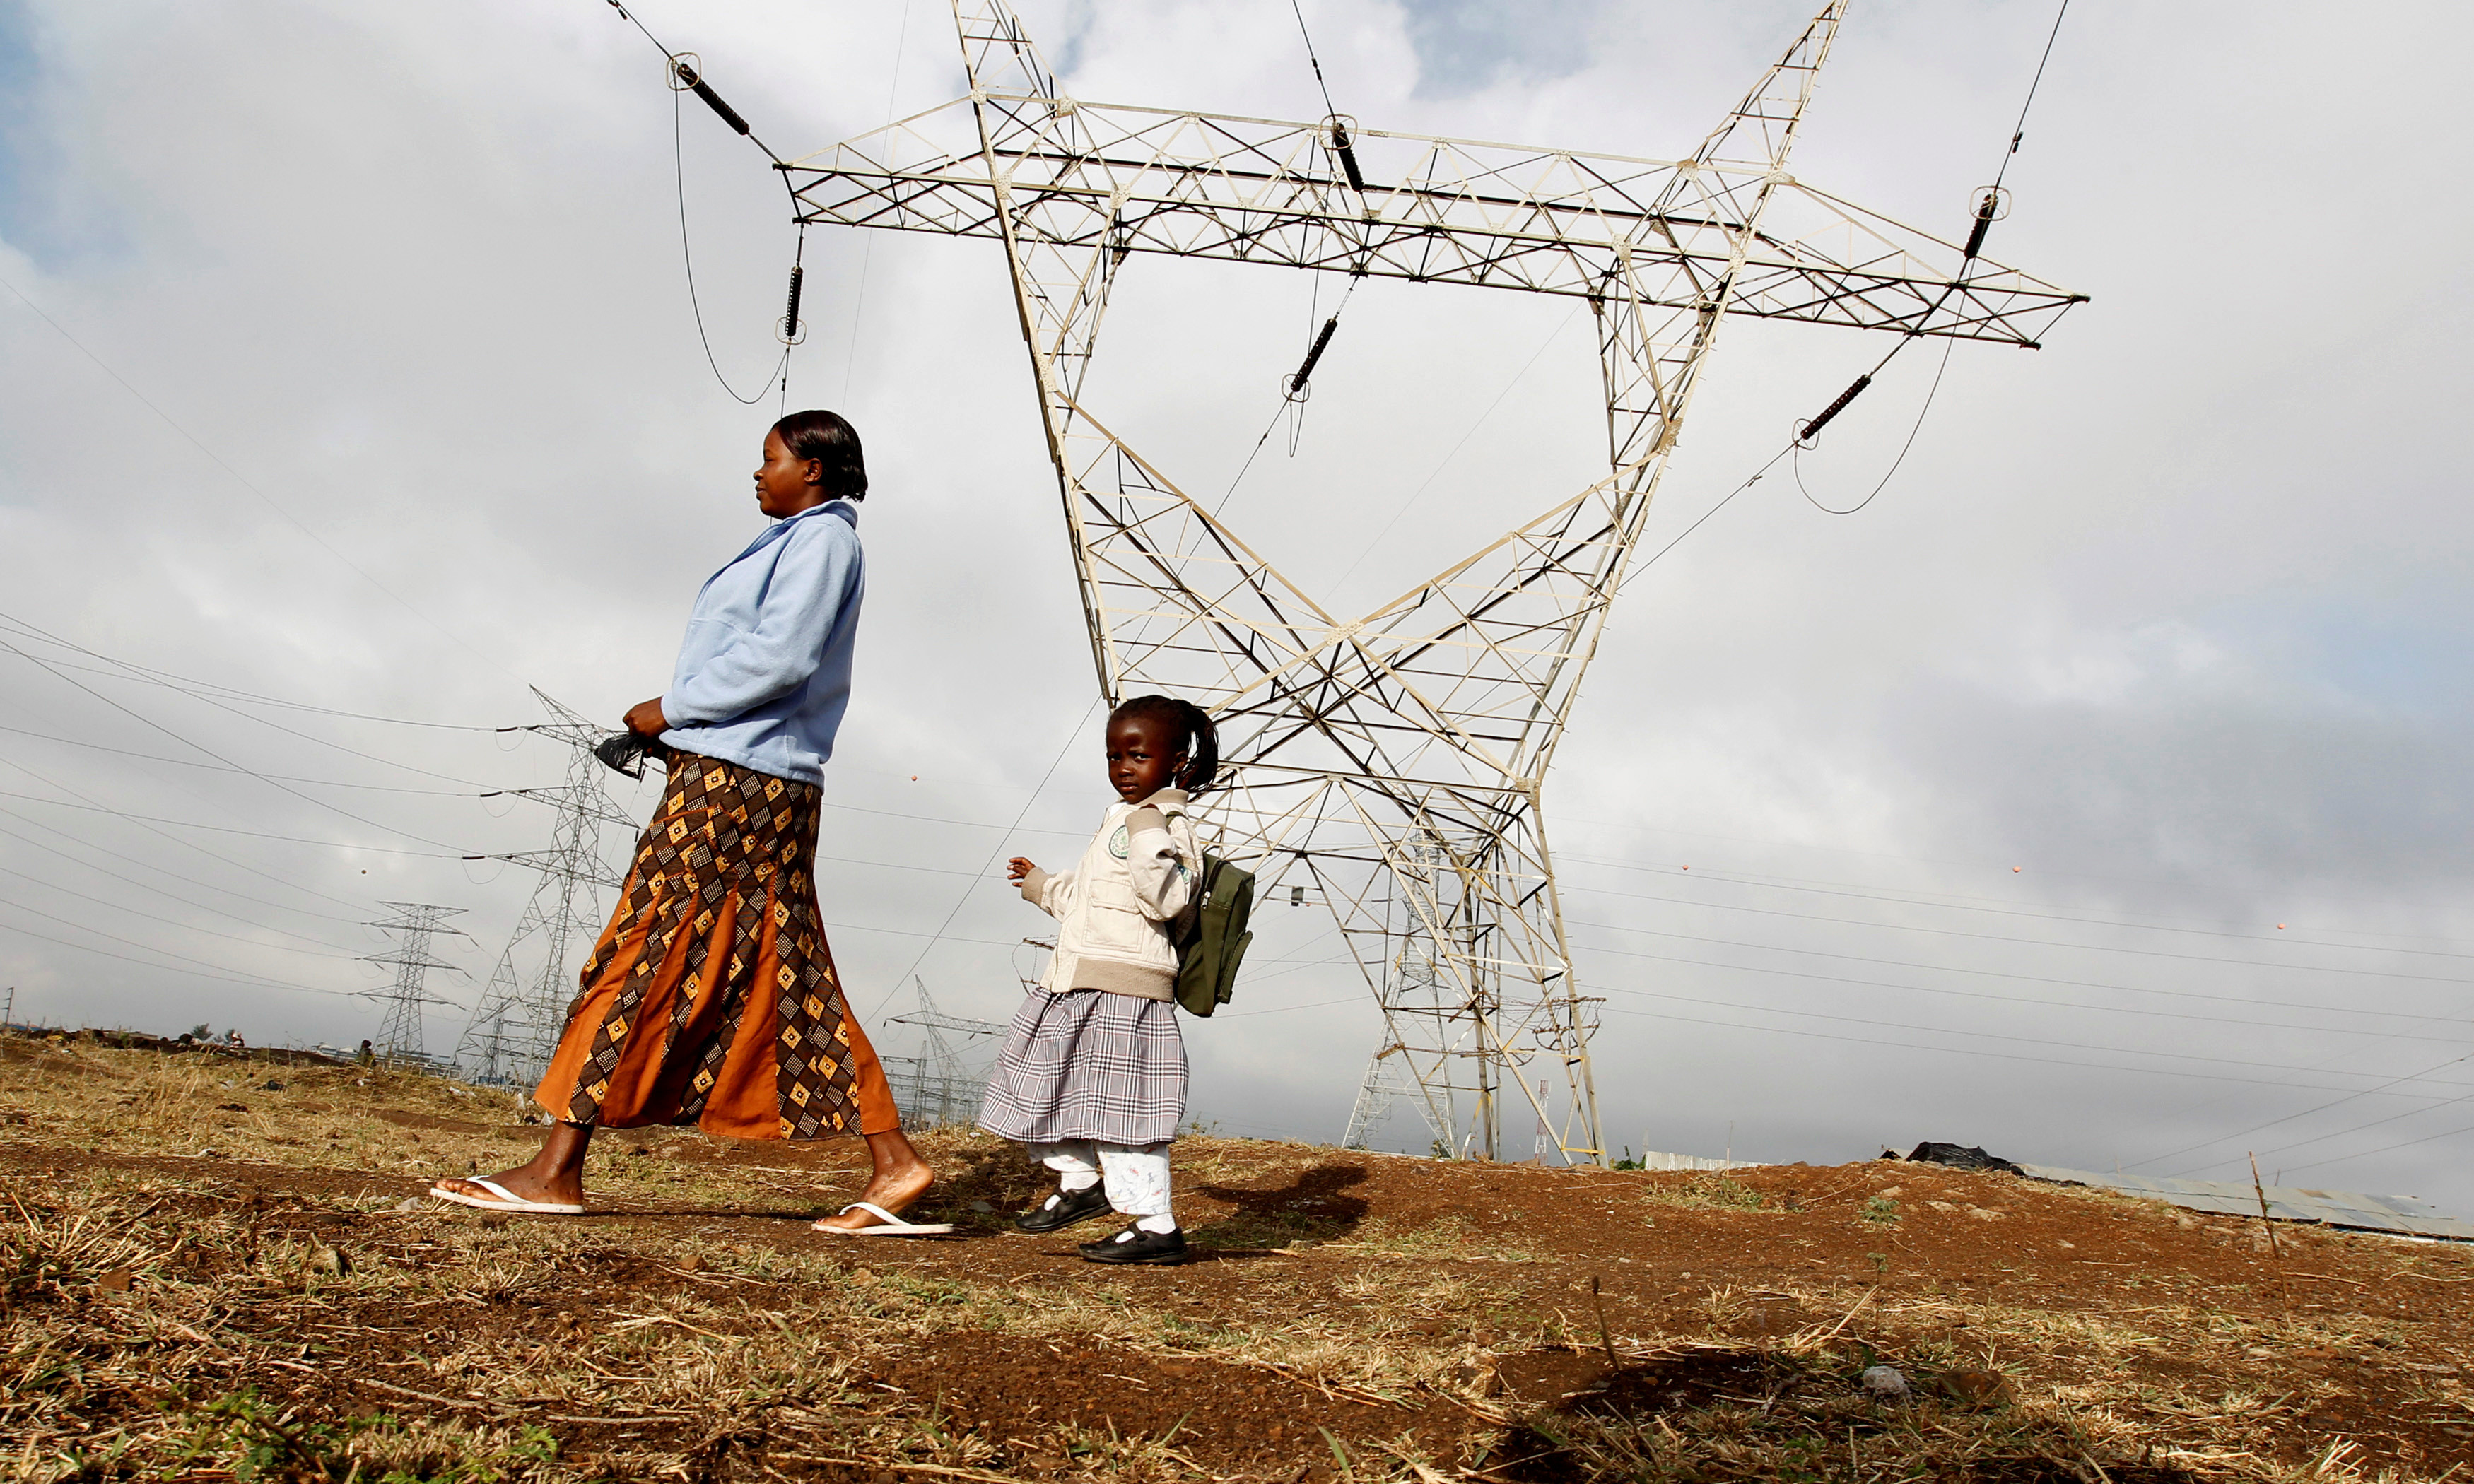 A woman walks her child to school past high voltage electrical pylons on the outskirts of Kenya's capital Nairobi, March 14, 2011